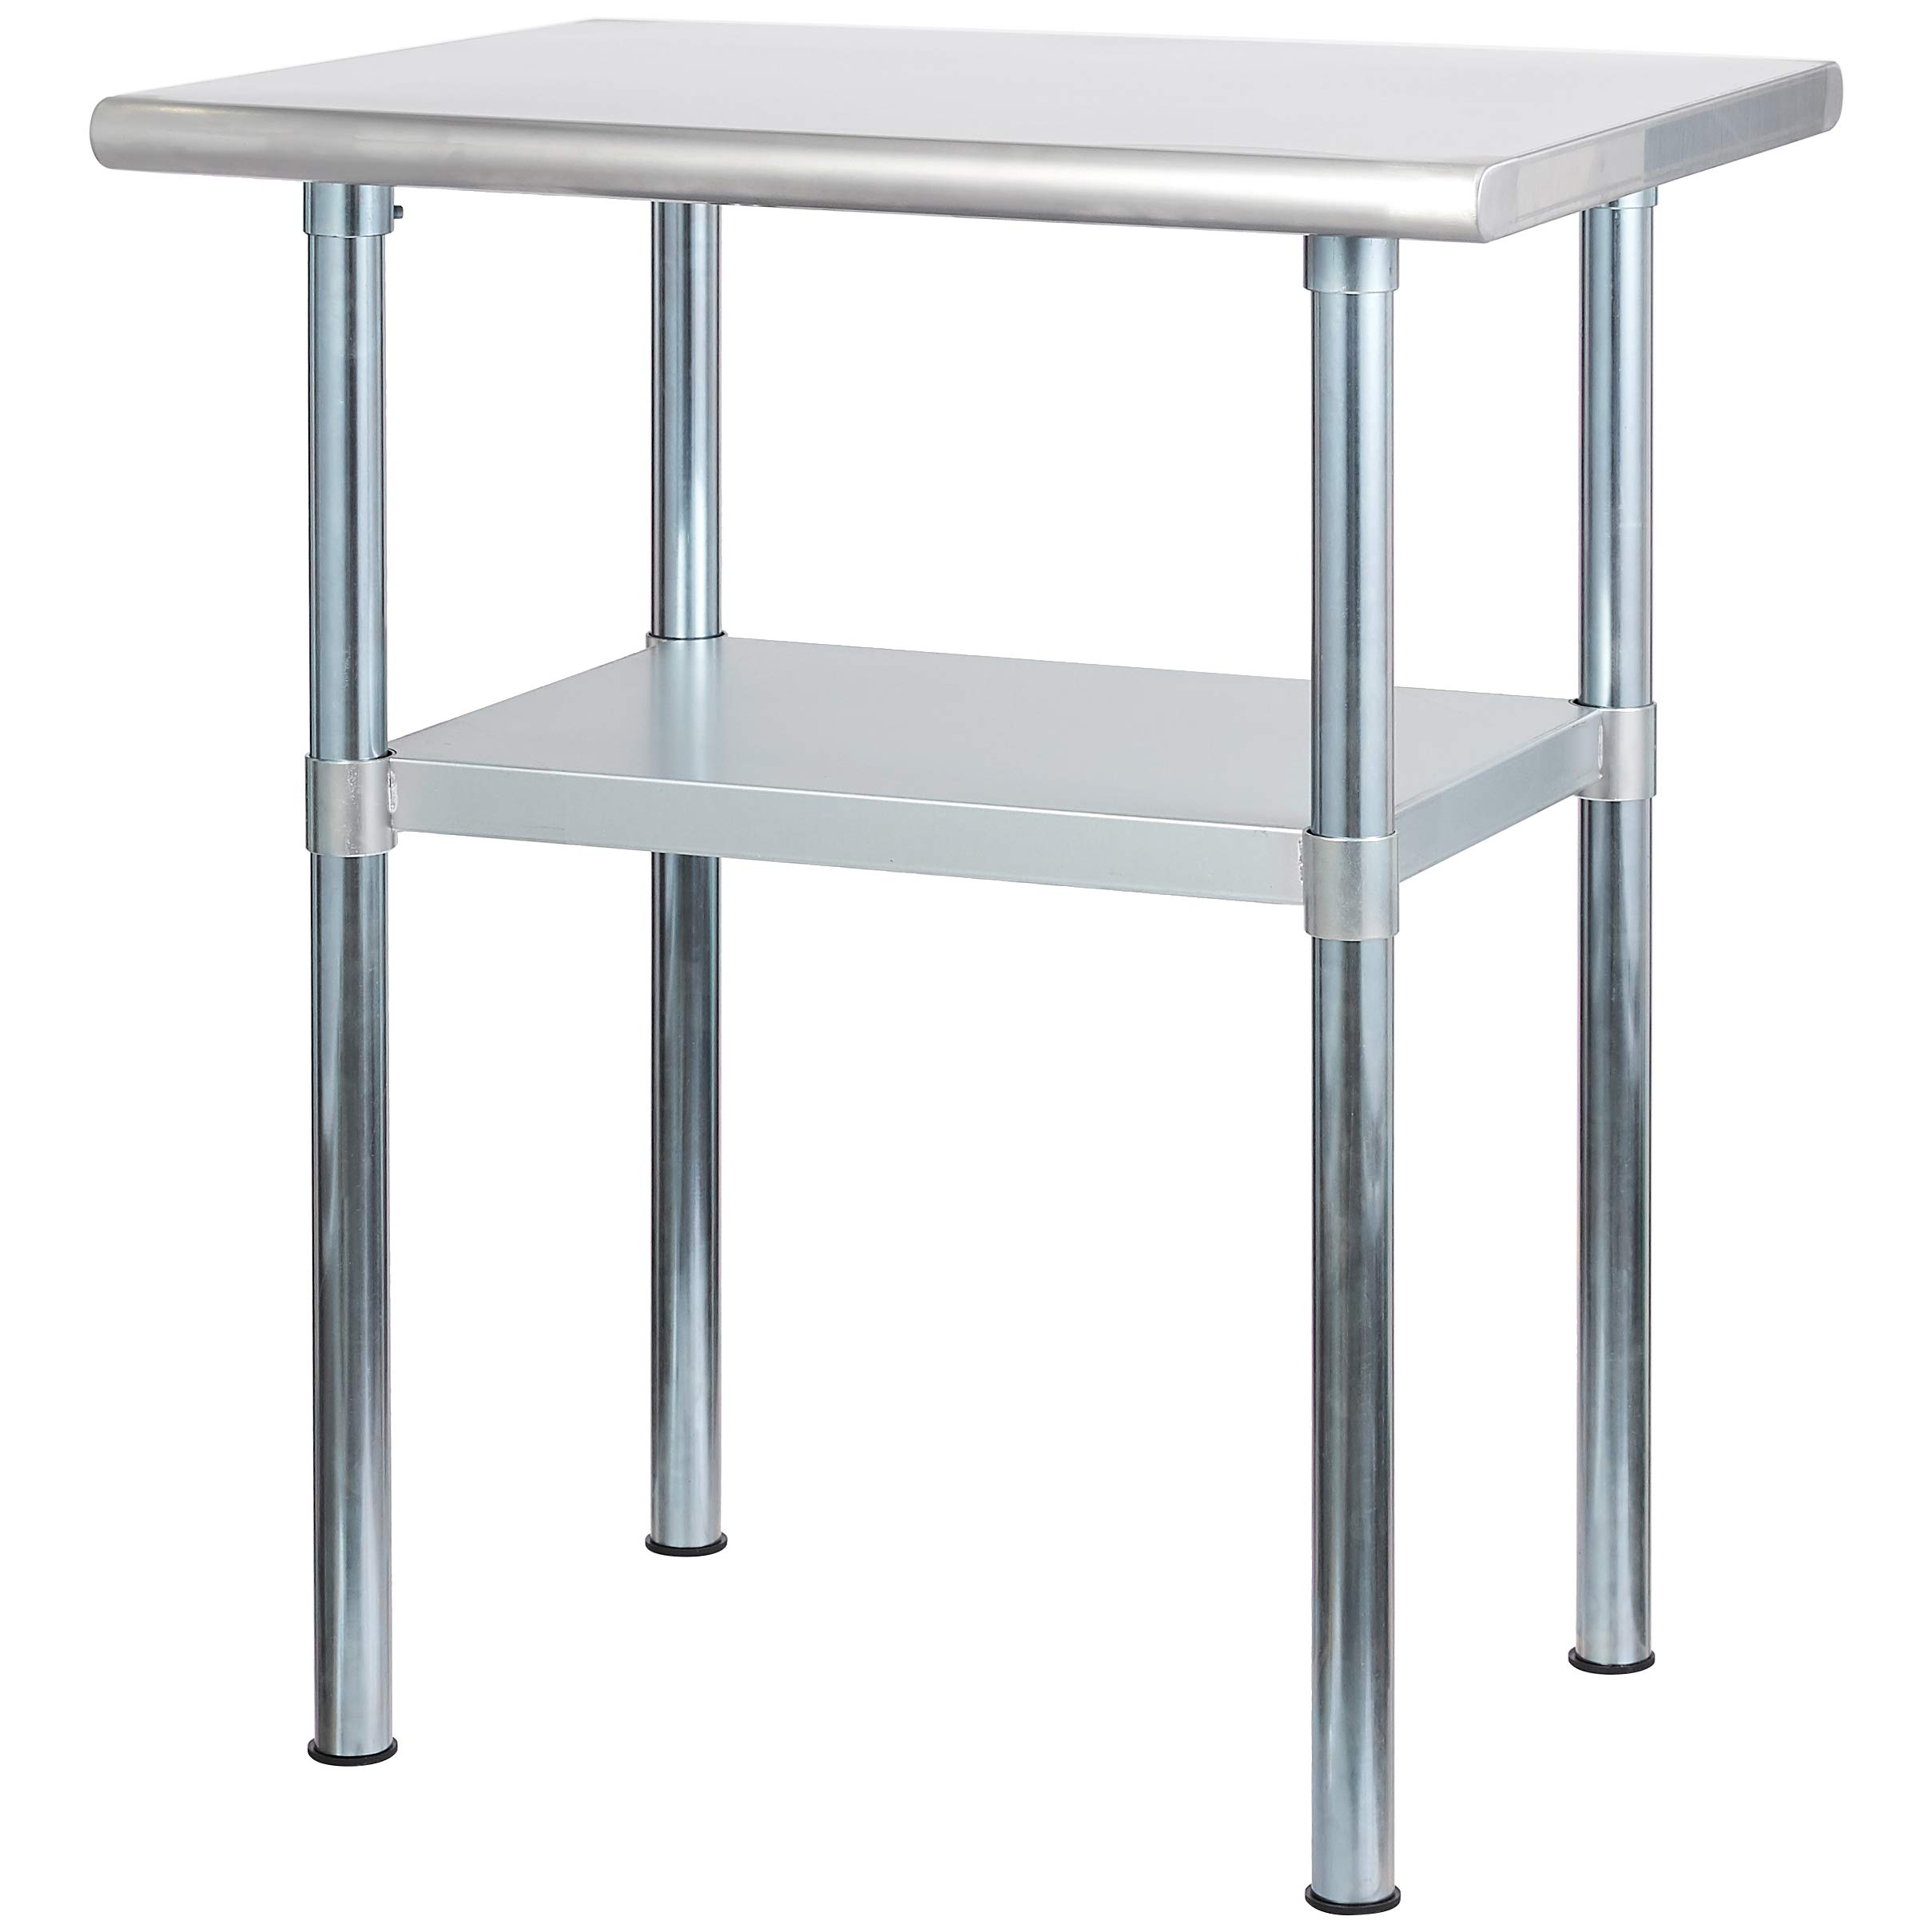 Rockpoint Carmona Tall NSF Stainless-Steel Kitchen Work Table with Adjustable Shelf, 30 x 23 Inch by ROCKPOINT